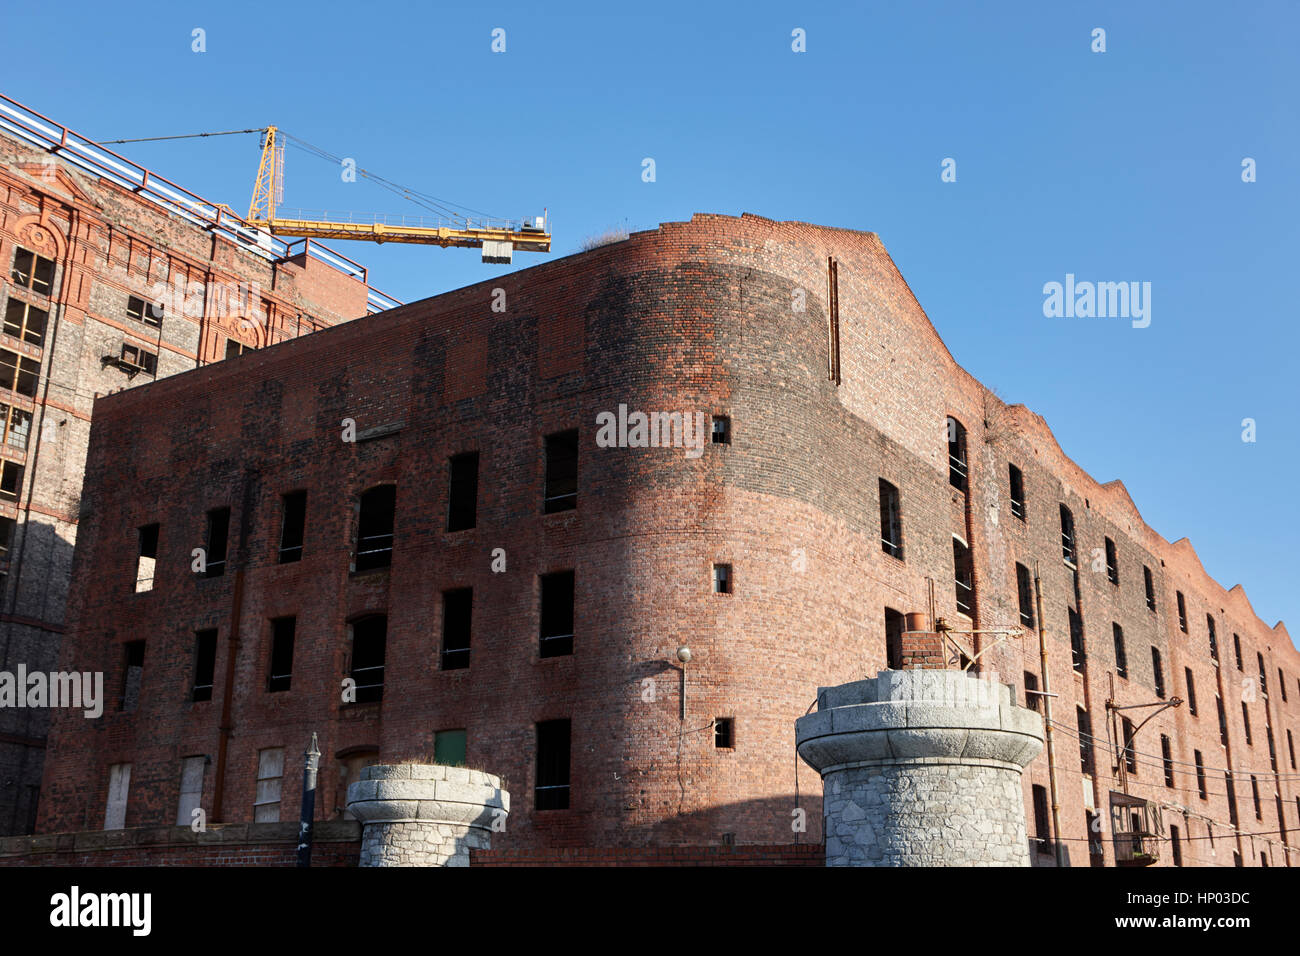 stanley dock tobacco warehouse liverpool's heritage market  uk the worlds largest brick warehouse currently undergoing Stock Photo